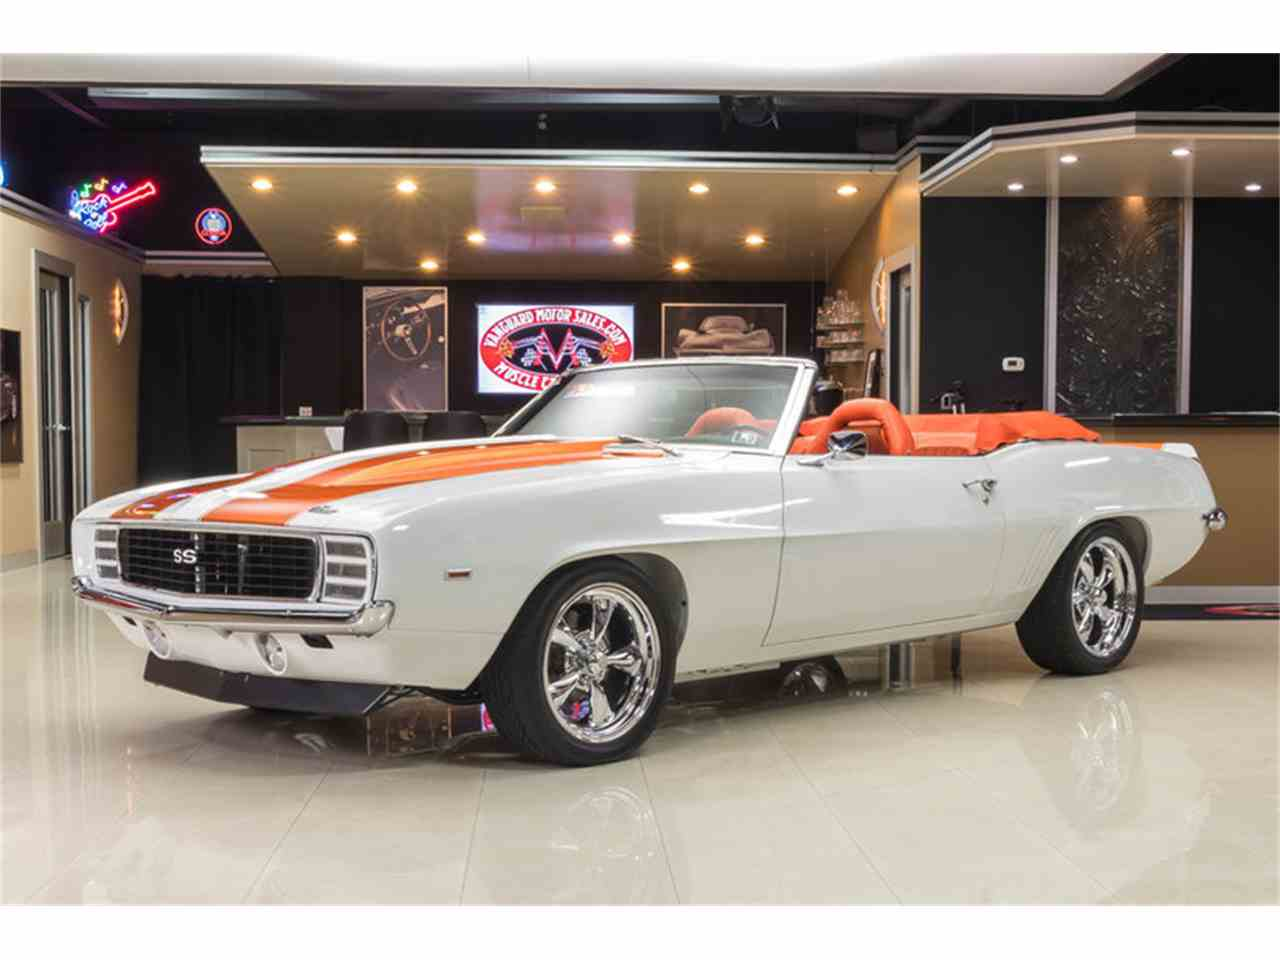 Pics photos chevrolet camaro resto mod for sale - 1969 Chevrolet Camaro Rs Ss Indy Pace Car Convertible Restomod For Sale Cc